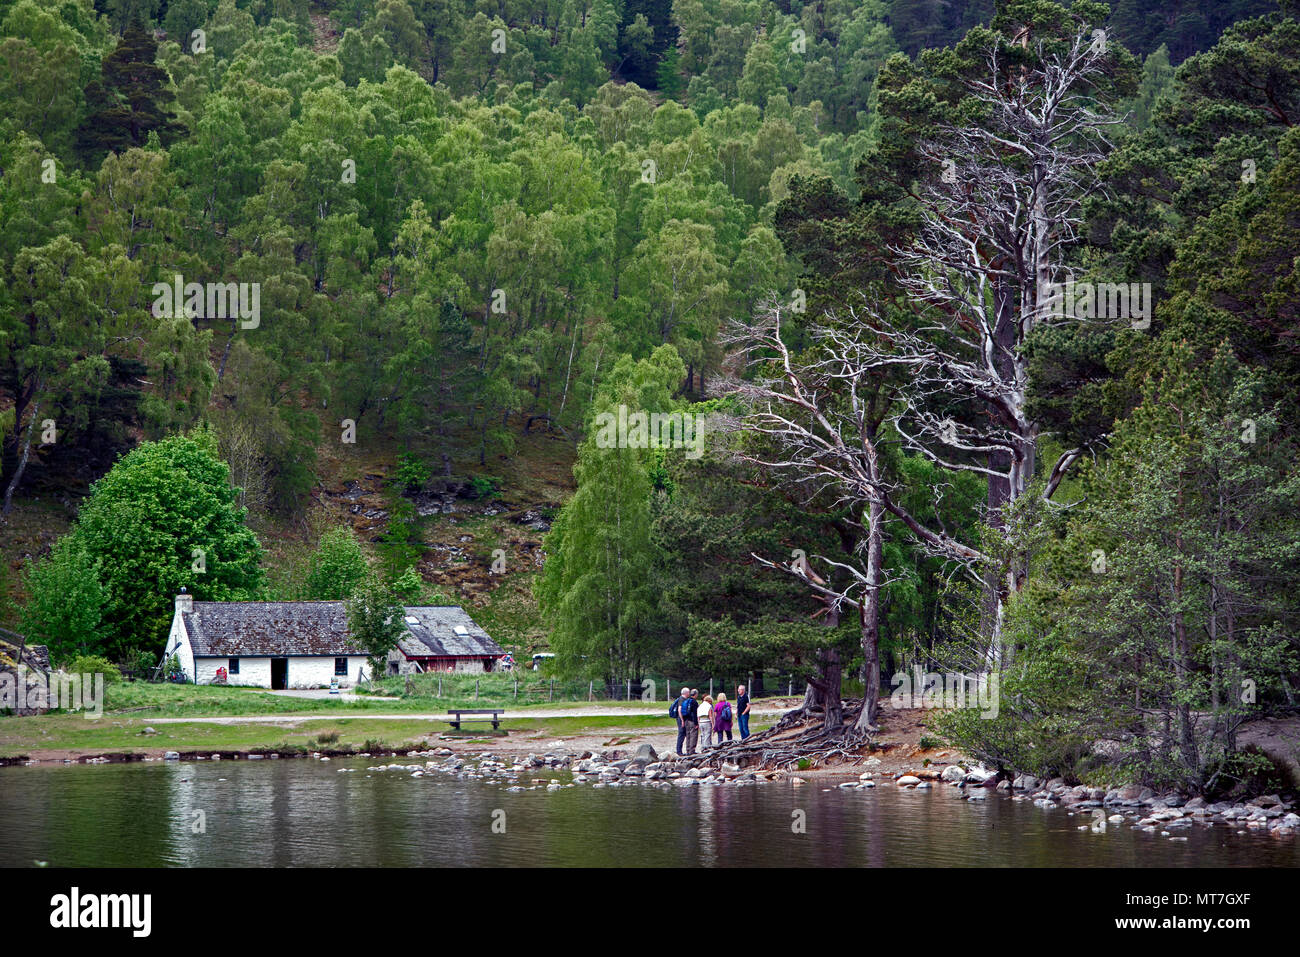 Visitor centre by the side of Loch an Eilein near Aviemore in the Cairngorms National Park, Scotland, UK. - Stock Image